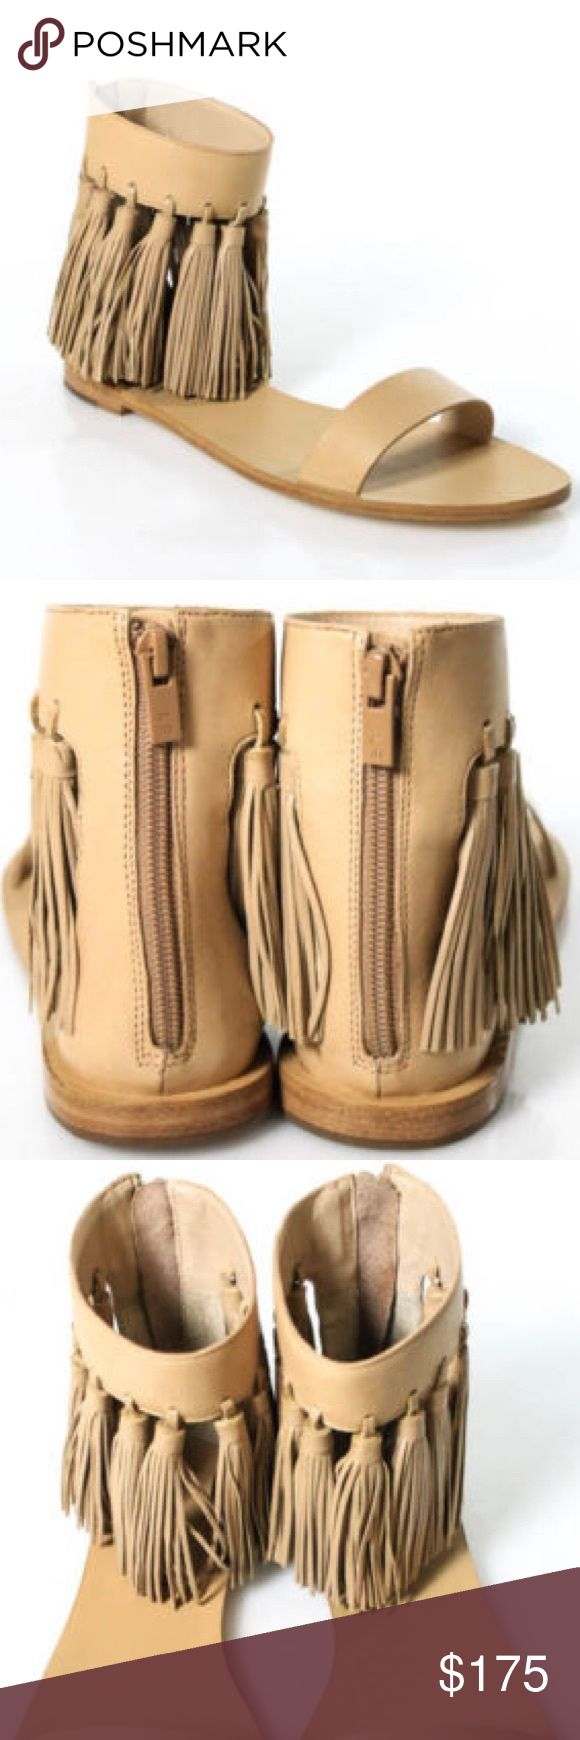 Loeffler Randall Lark Sandals Fringe Flat Wheat Loeffler Randall Lark Sandals These are new without box. They do have some very faint marks on the sole from trying on in the store.   Size 8 Loeffler Randall Shoes Sandals